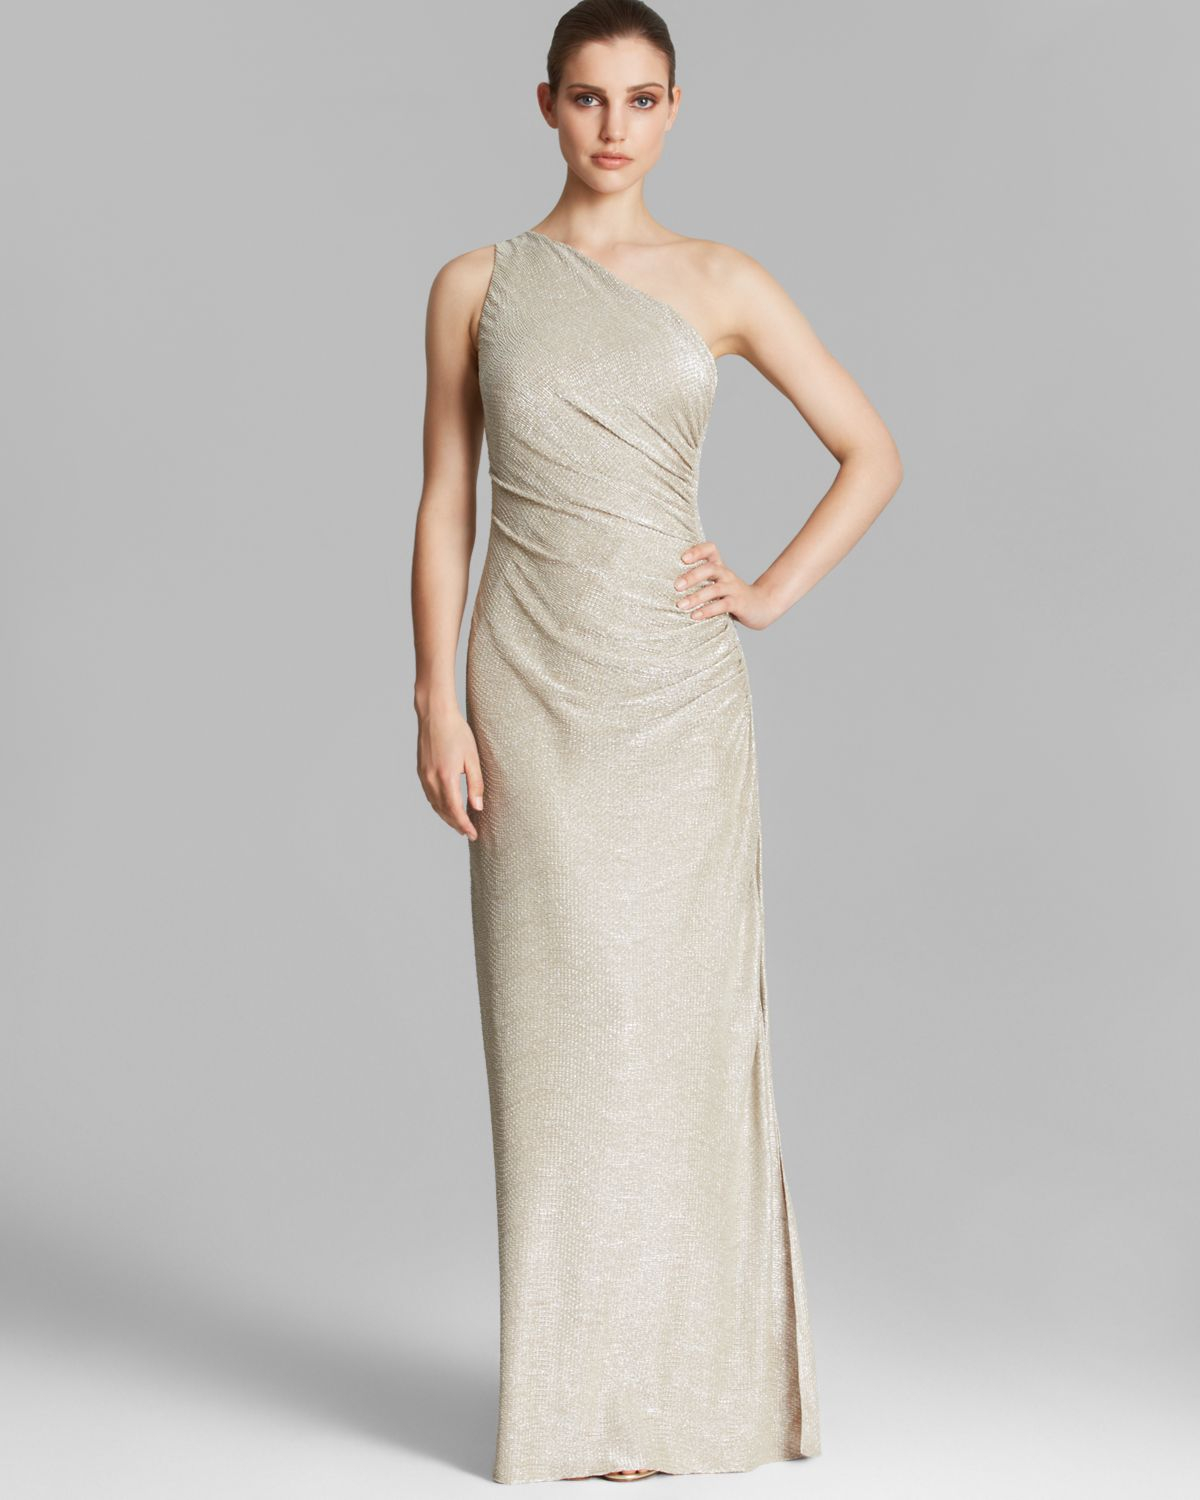 670a8438ad682 Lyst - Laundry by Shelli Segal Gown - One Shoulder Metallic Knit ...